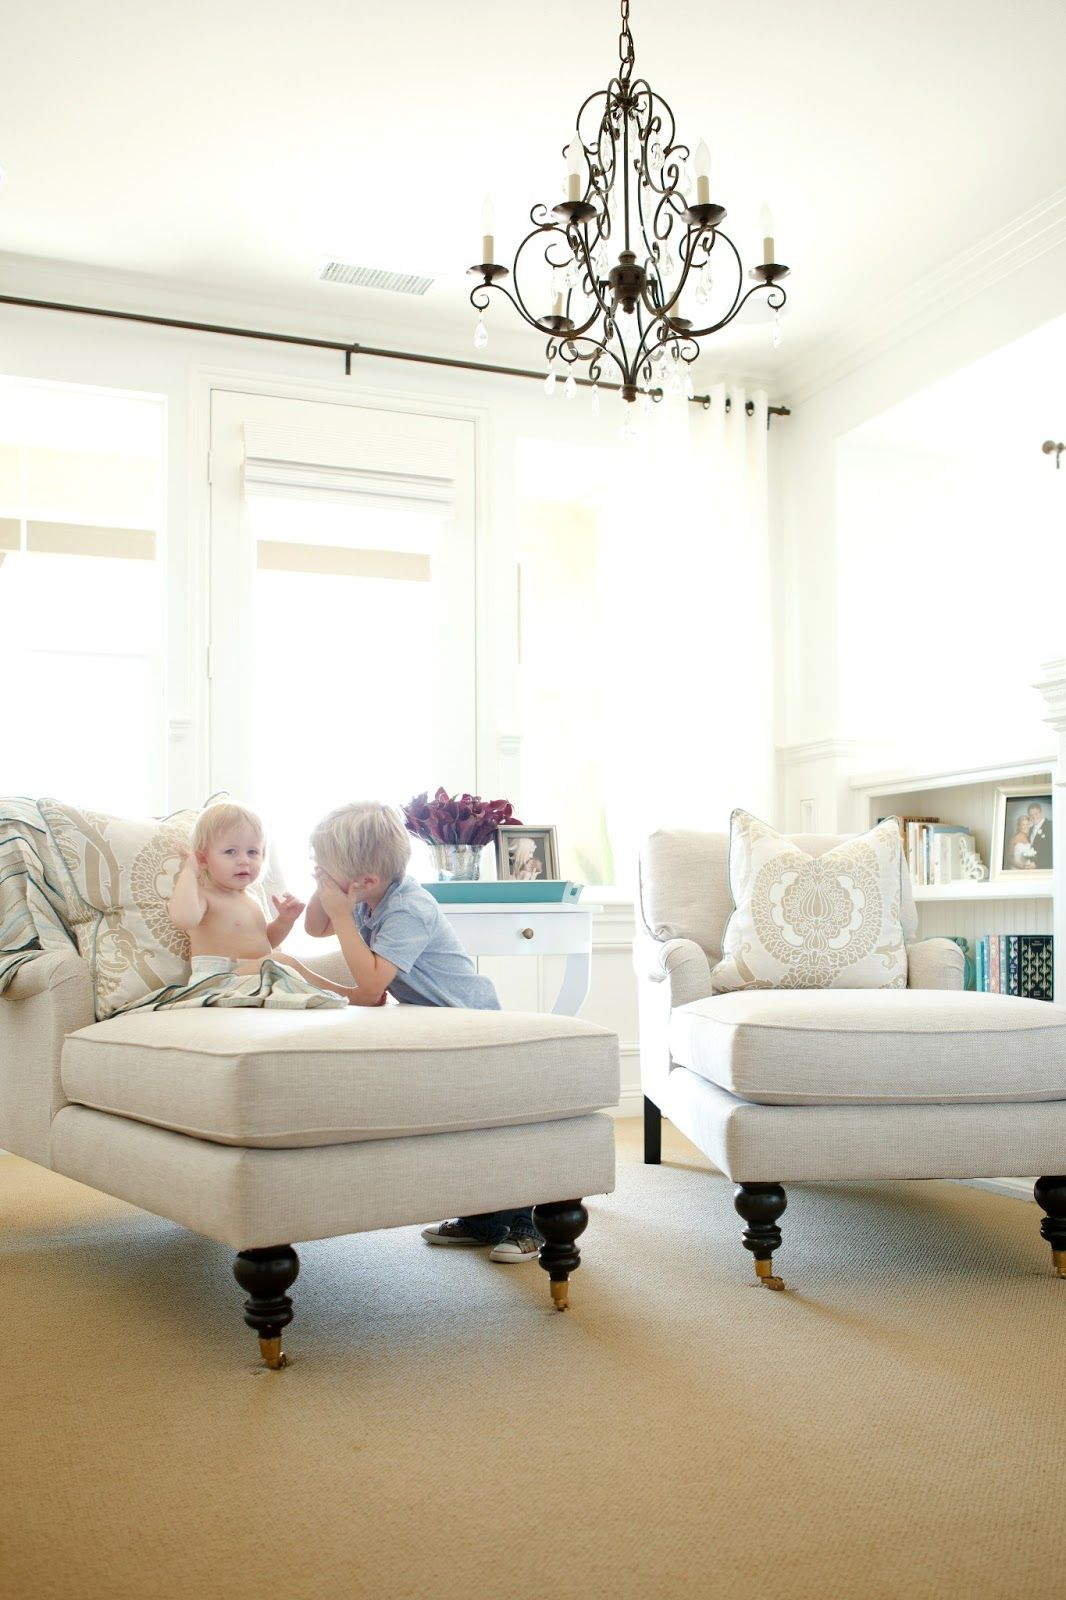 Chaise Reading Nook Bdg Style Knitting Nook Ideas In